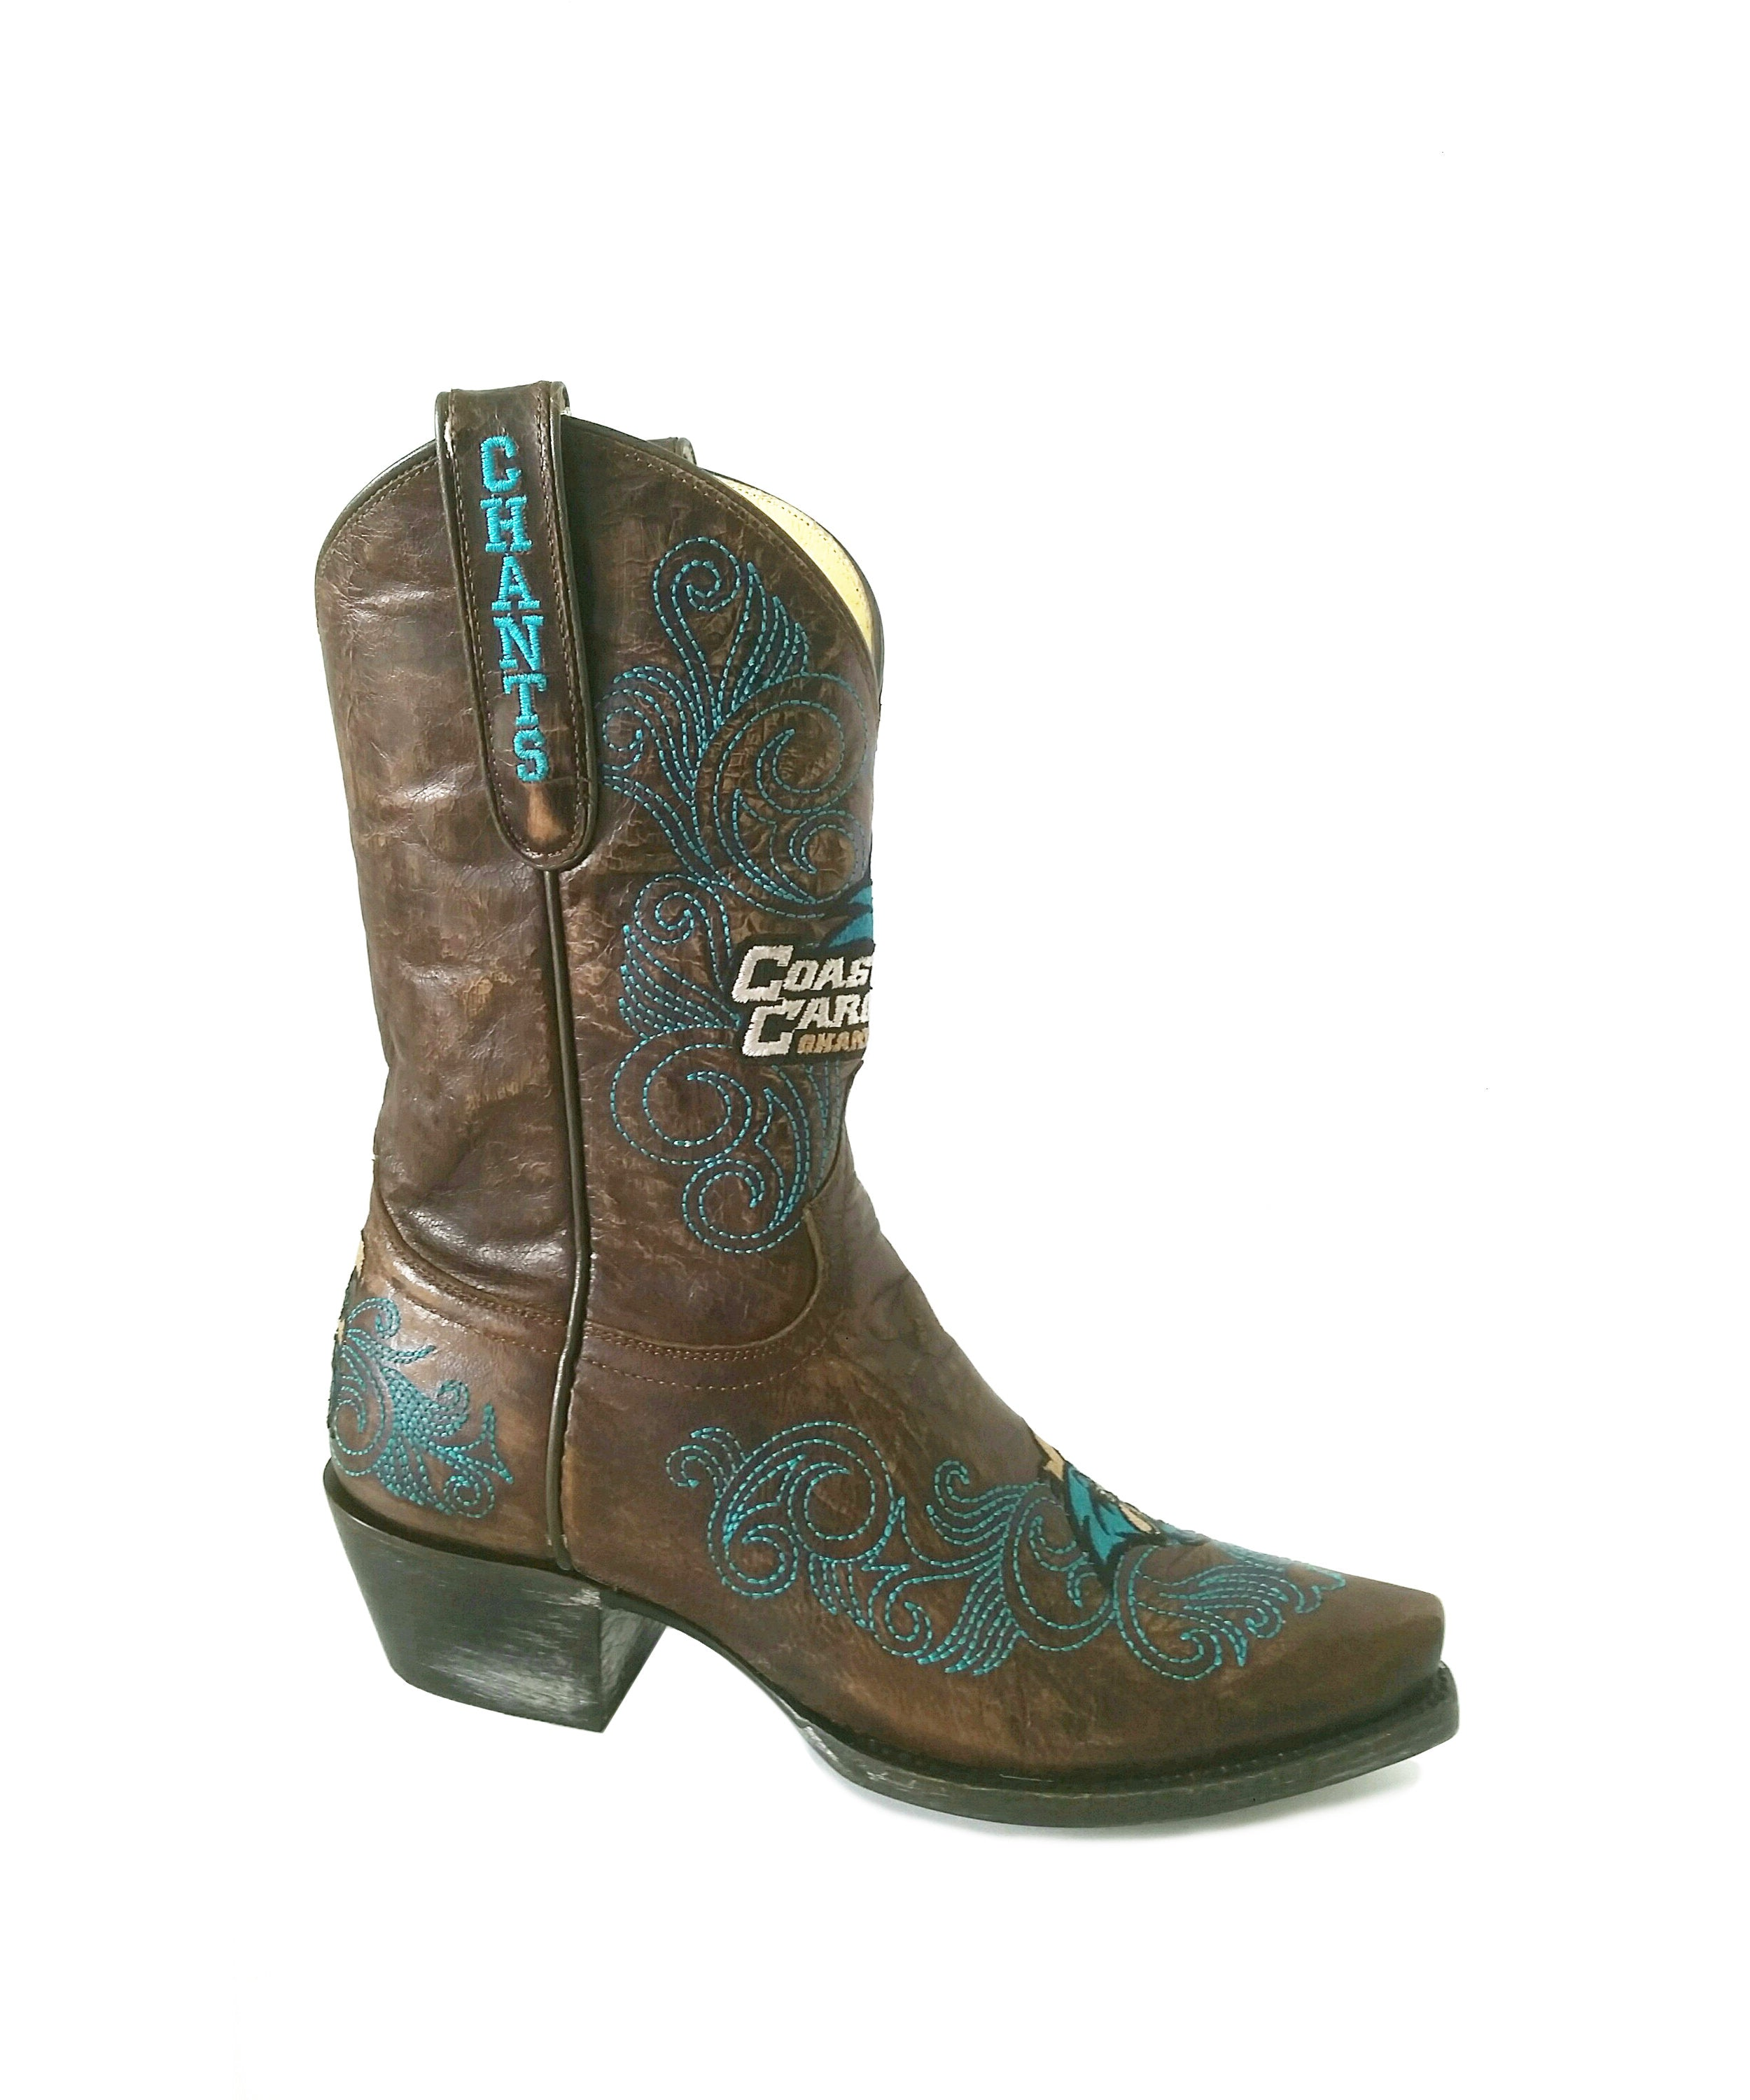 Coastal Carolina Boot